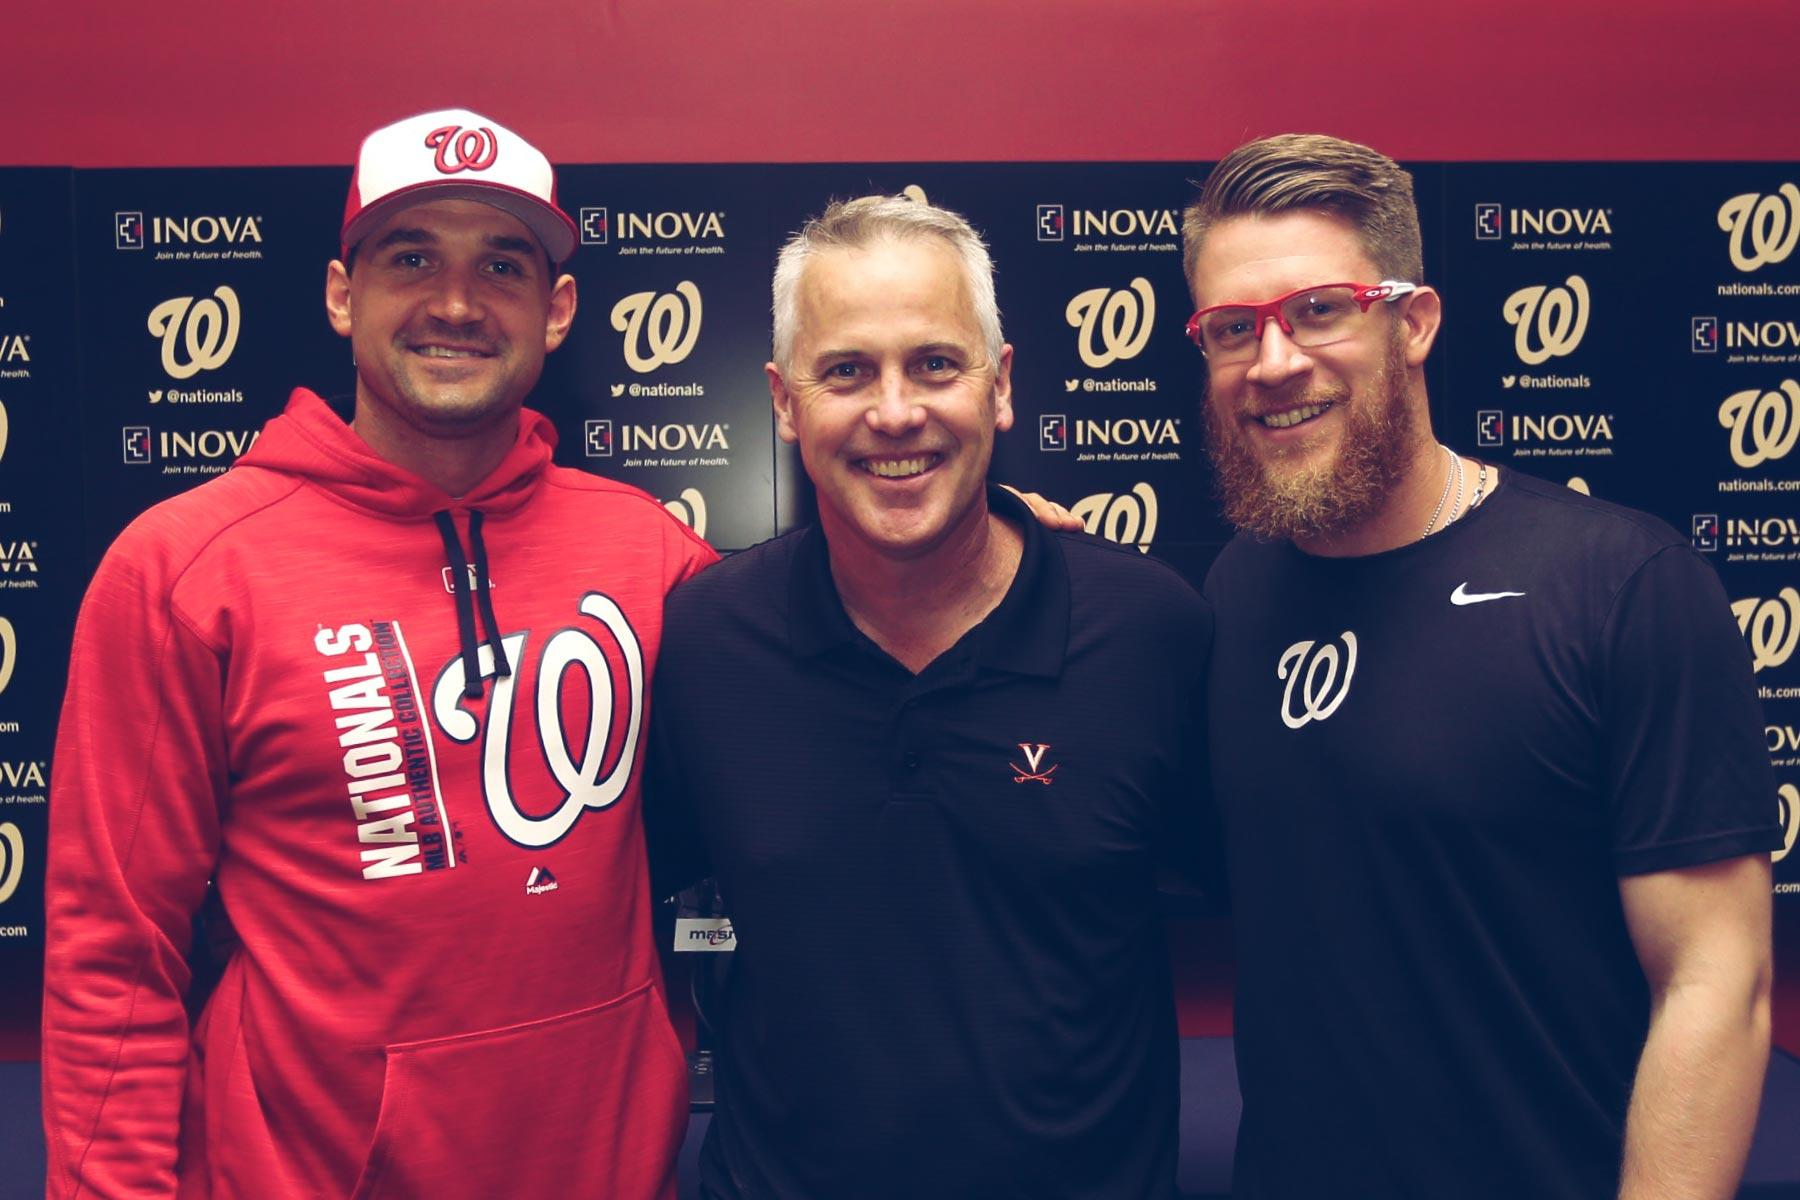 From left, Ryan Zimmerman, UVA baseball coach Brian O'Connor, and Sean Doolittle enjoyed a chance to get together briefly between Washington Nationals games.